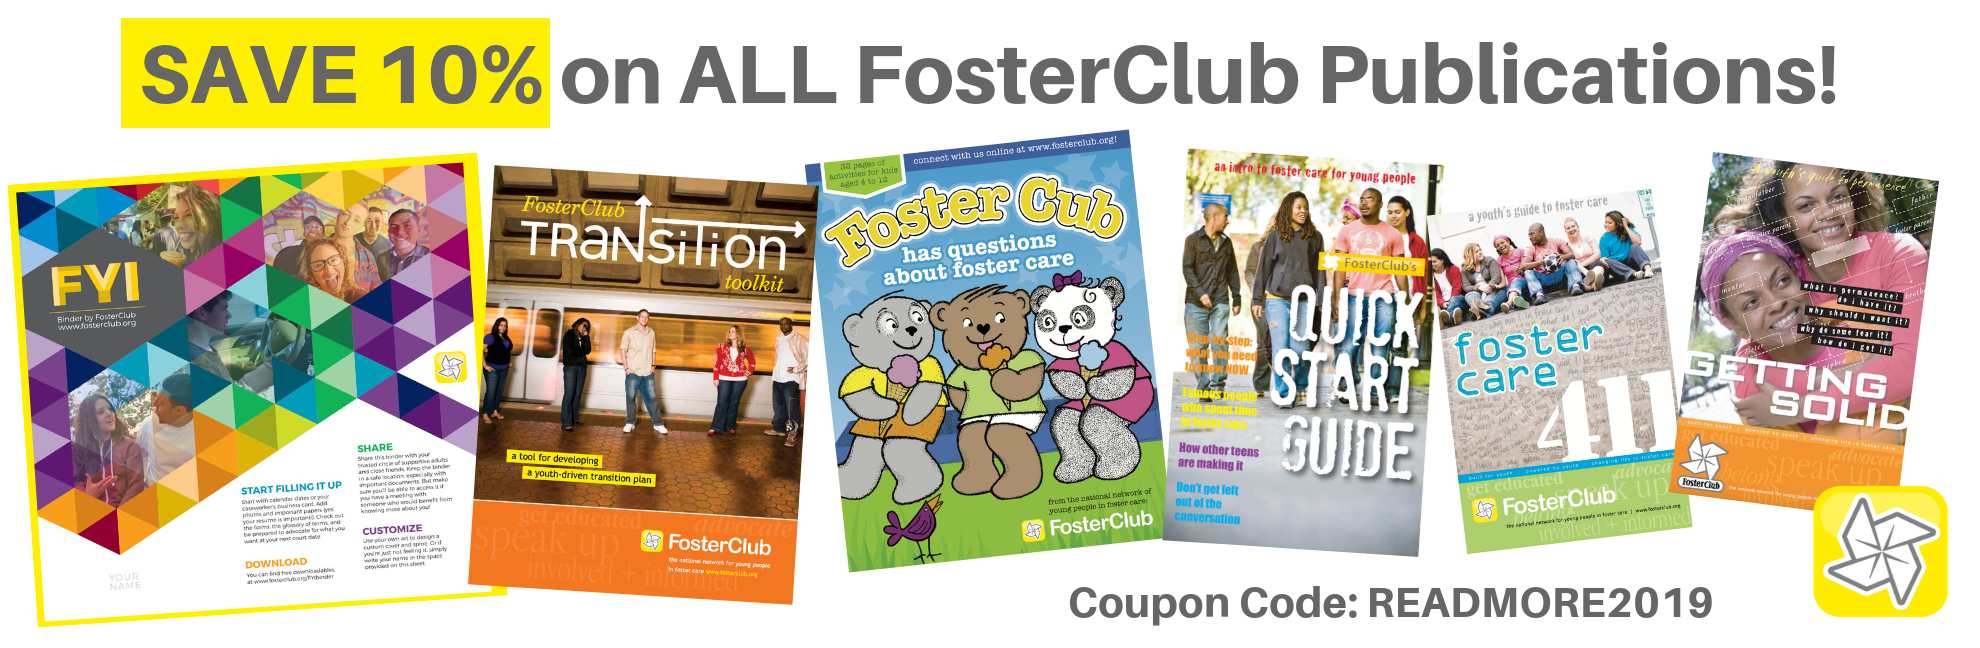 10-off-intro-to-foster-care-banner-for-booth-.png